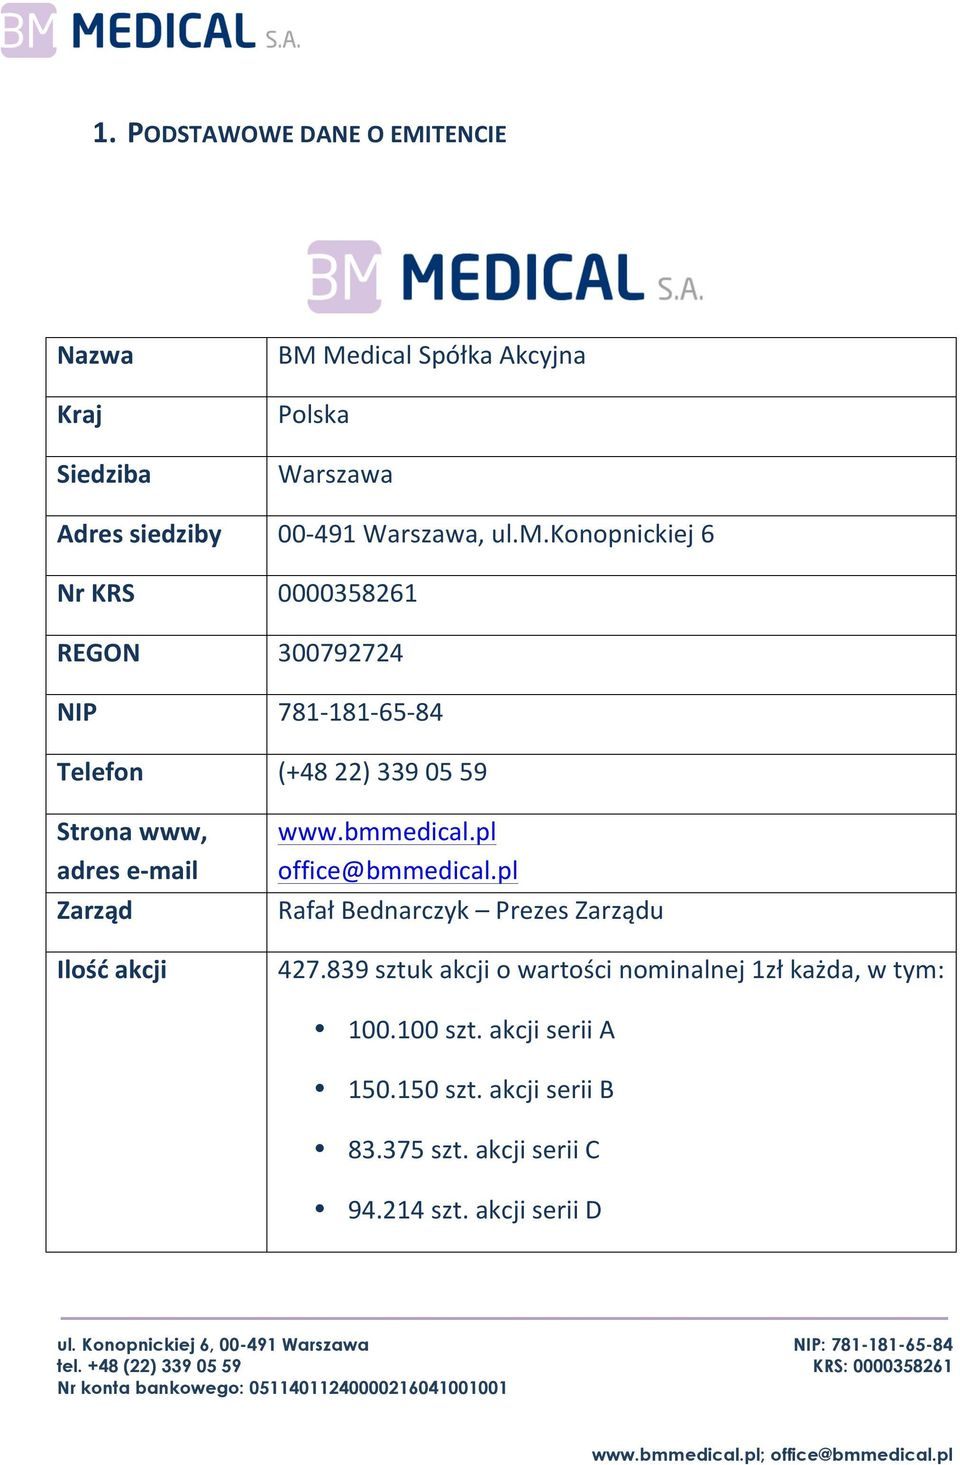 konopnickiej 6 0000358261 300792724 781-181- 65-84 (+48 22) 339 05 59 www.bmmedical.pl office@bmmedical.